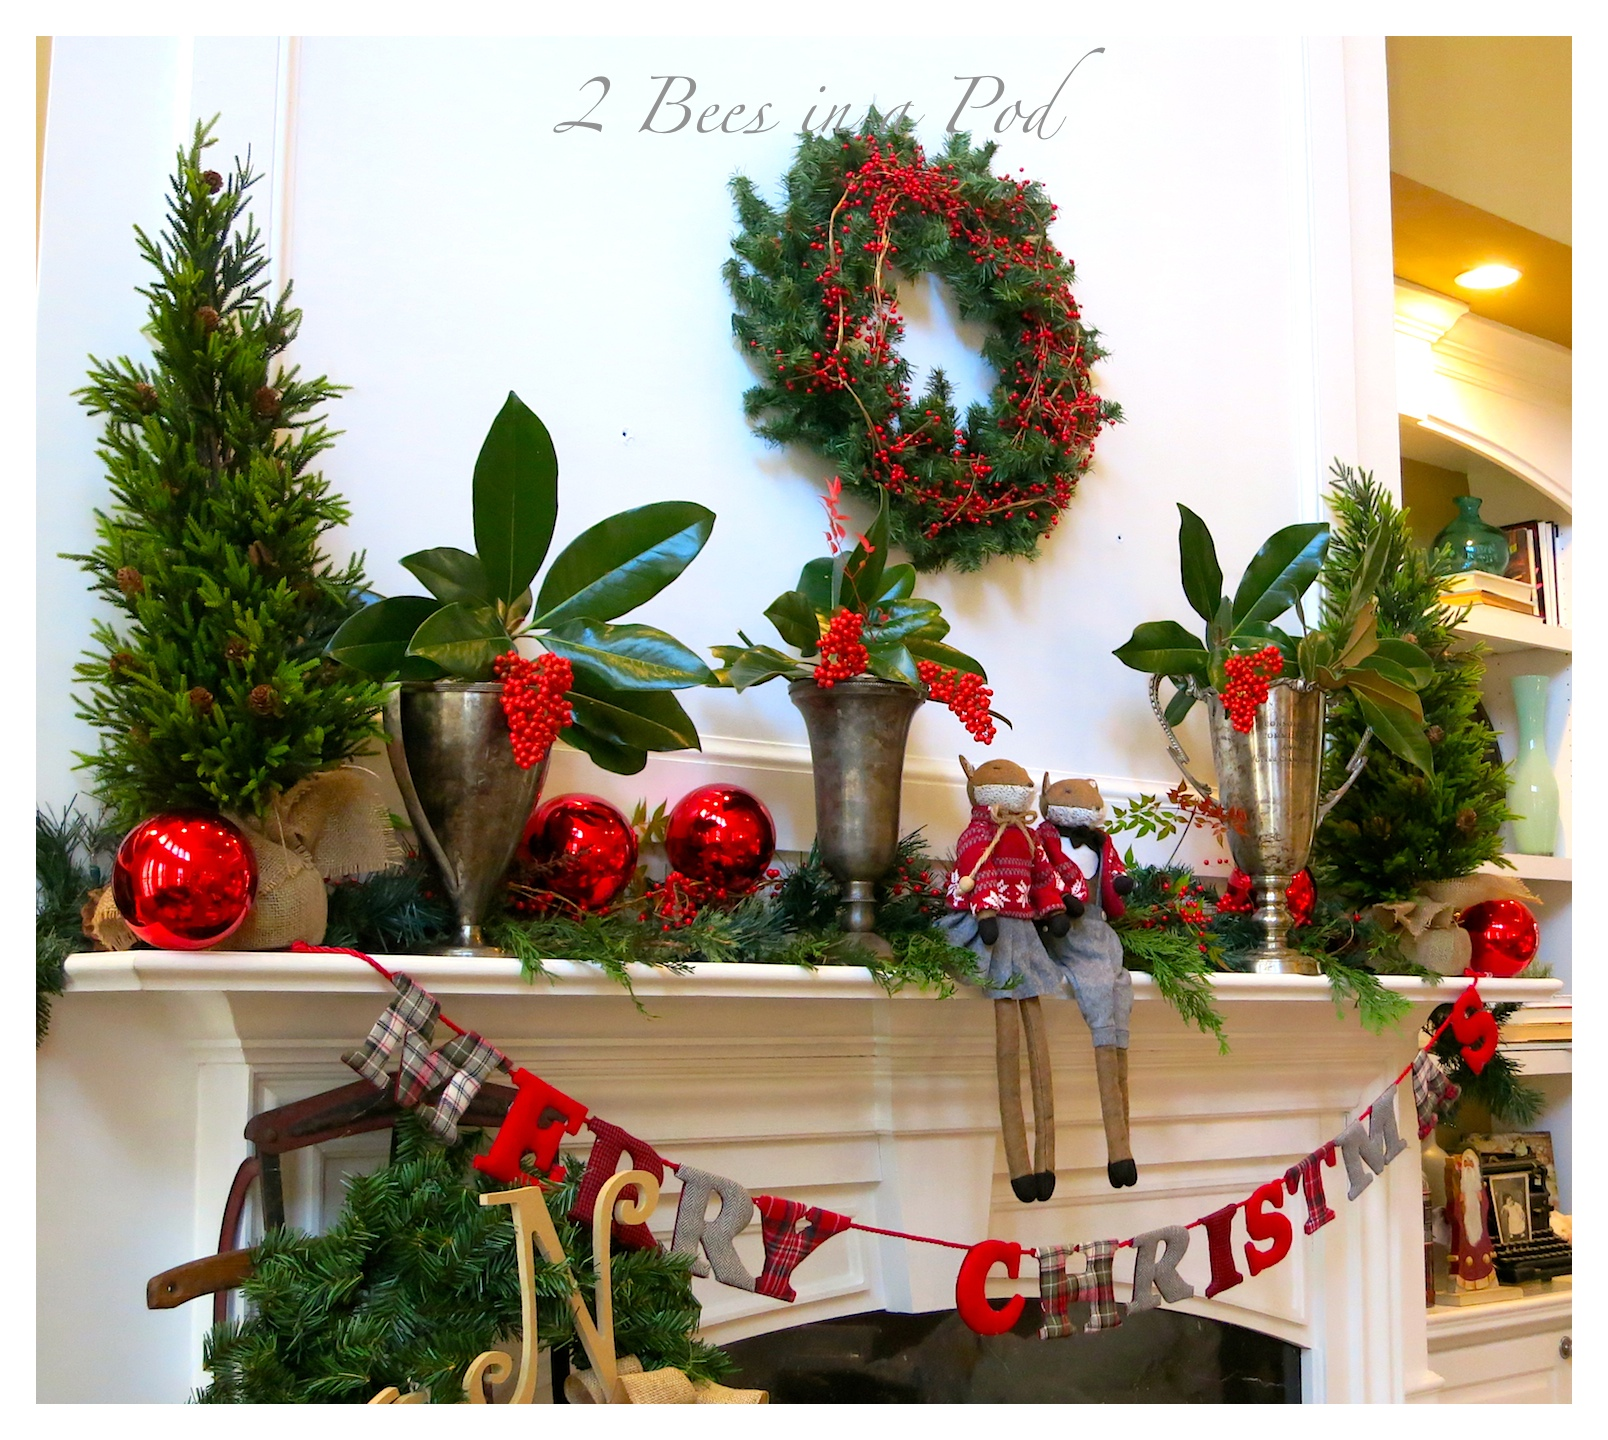 Why is holly a traditional christmas decoration - Christmas Home Tour 2014 Traditional Green And Red Decor Also Rustic And Vintage Decor